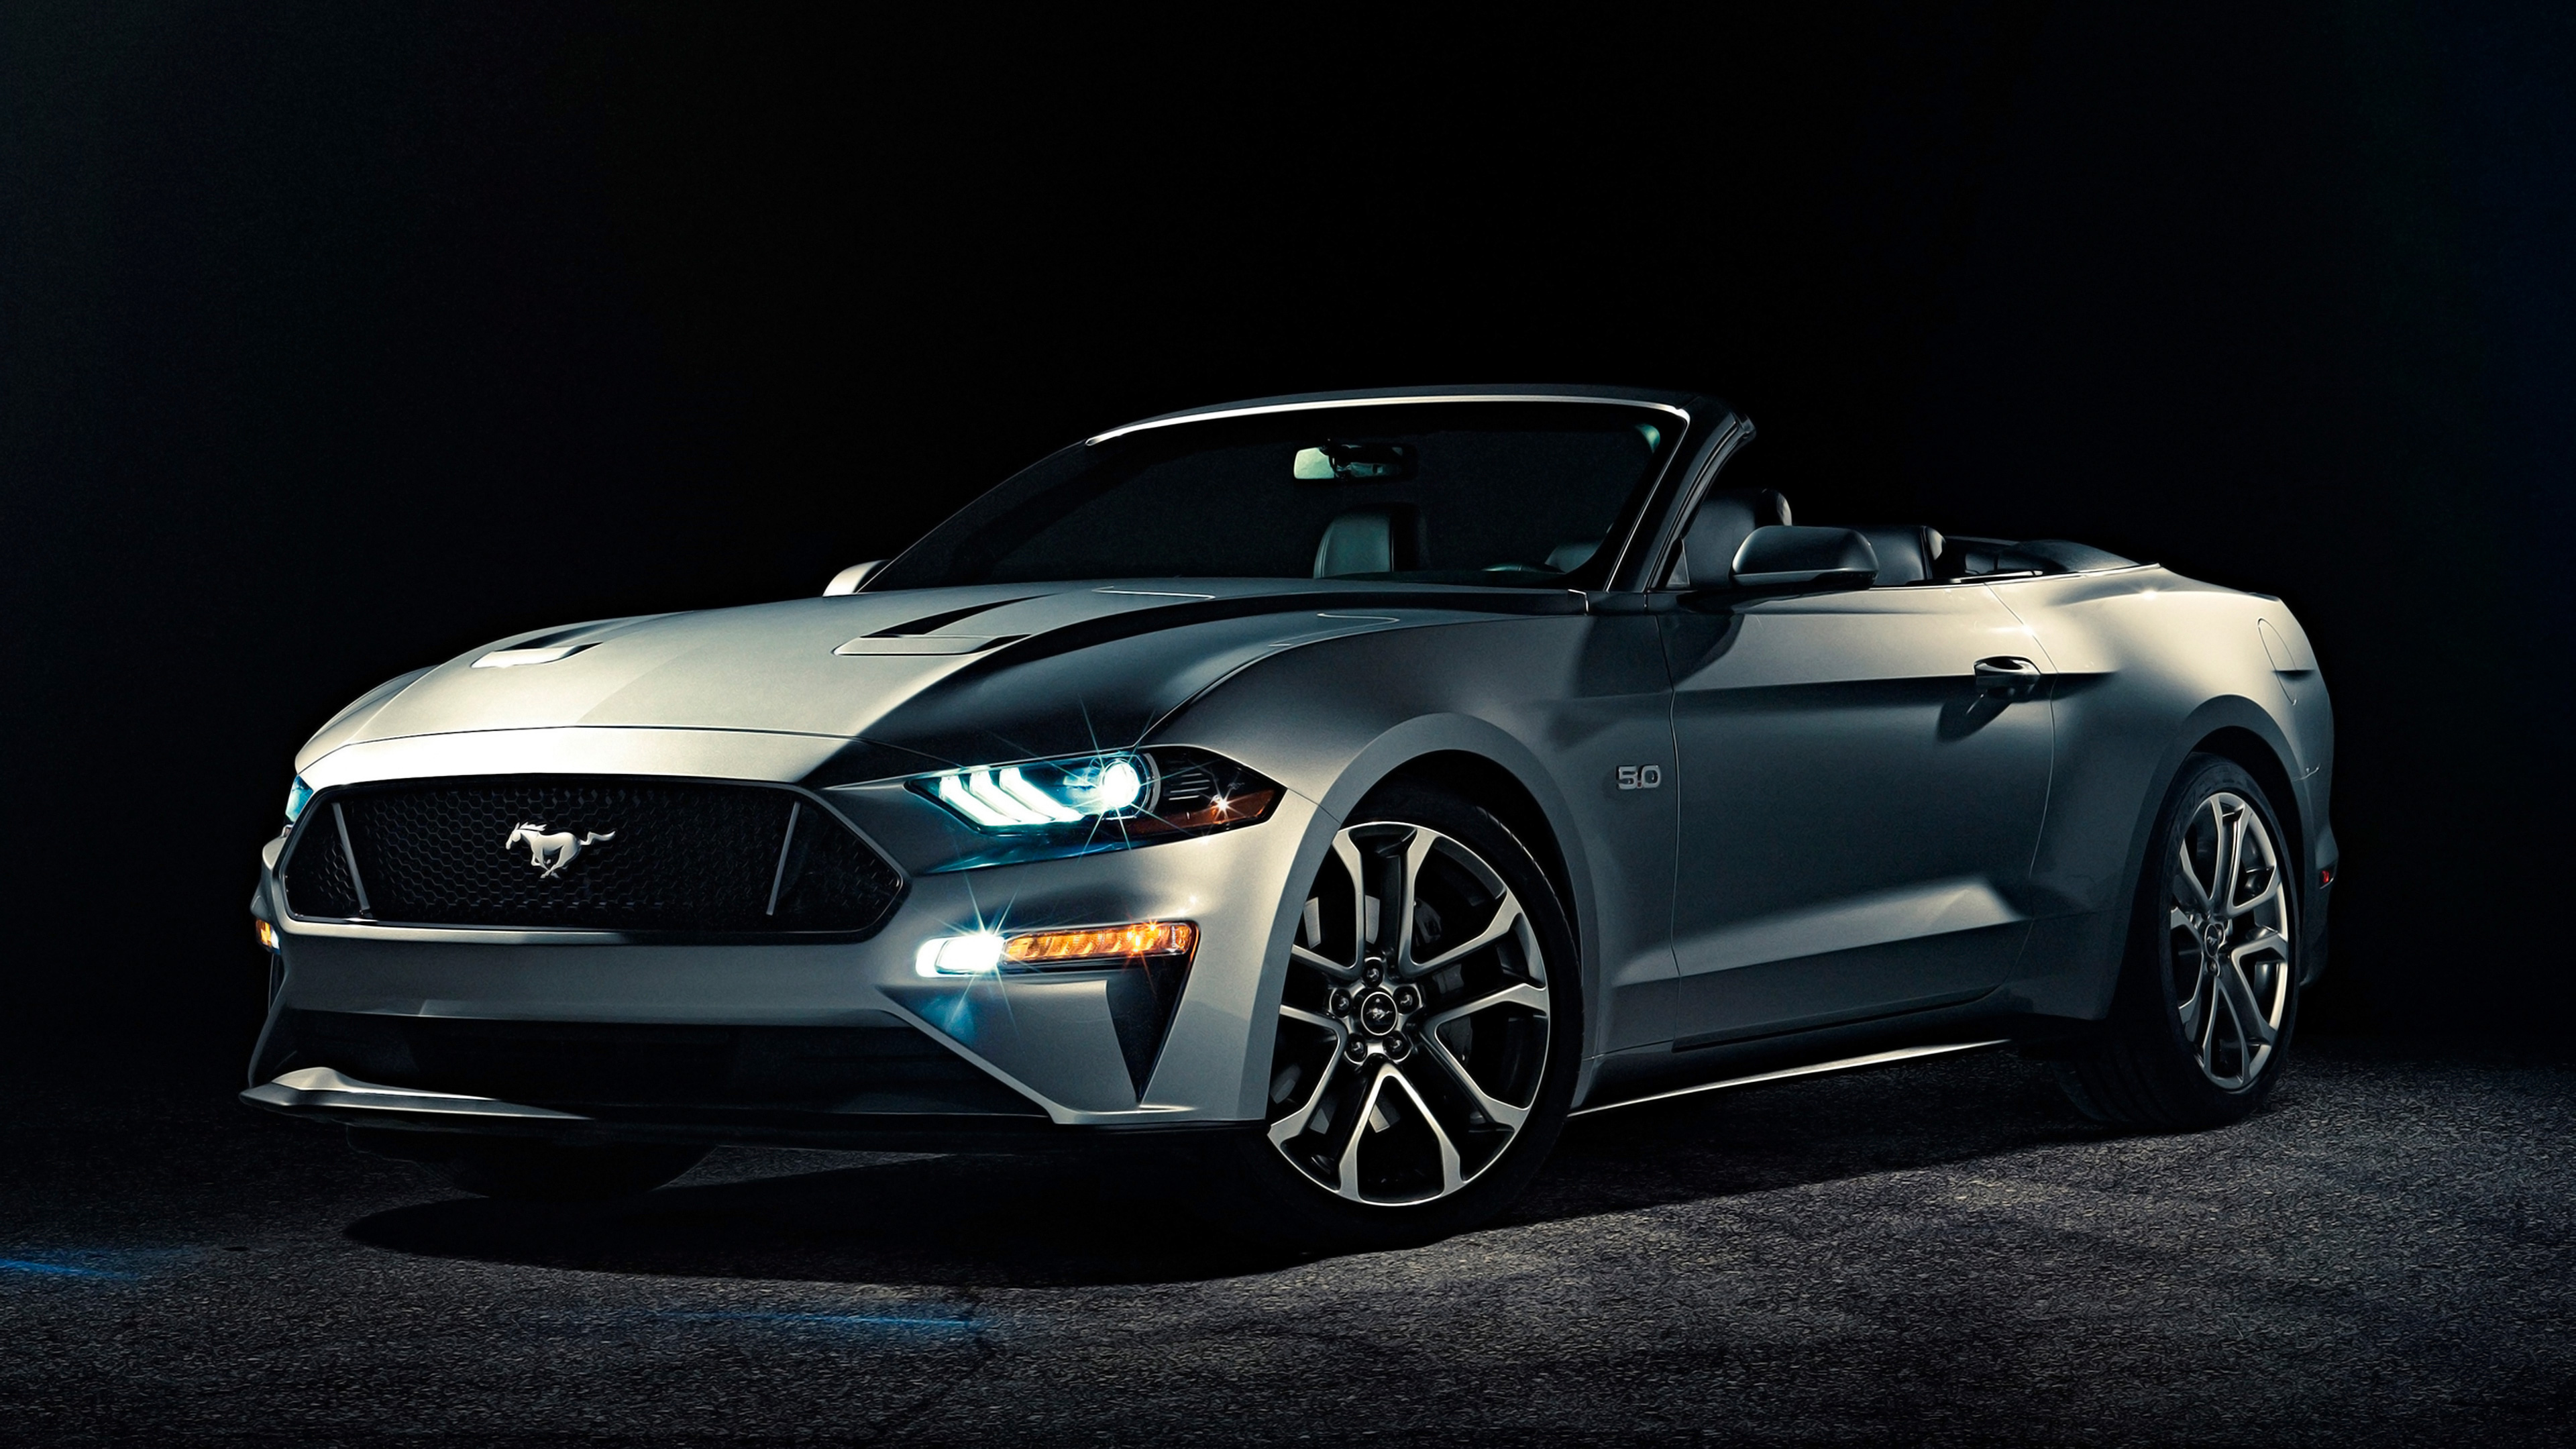 Tags: Convertible Ford Mustang 2018